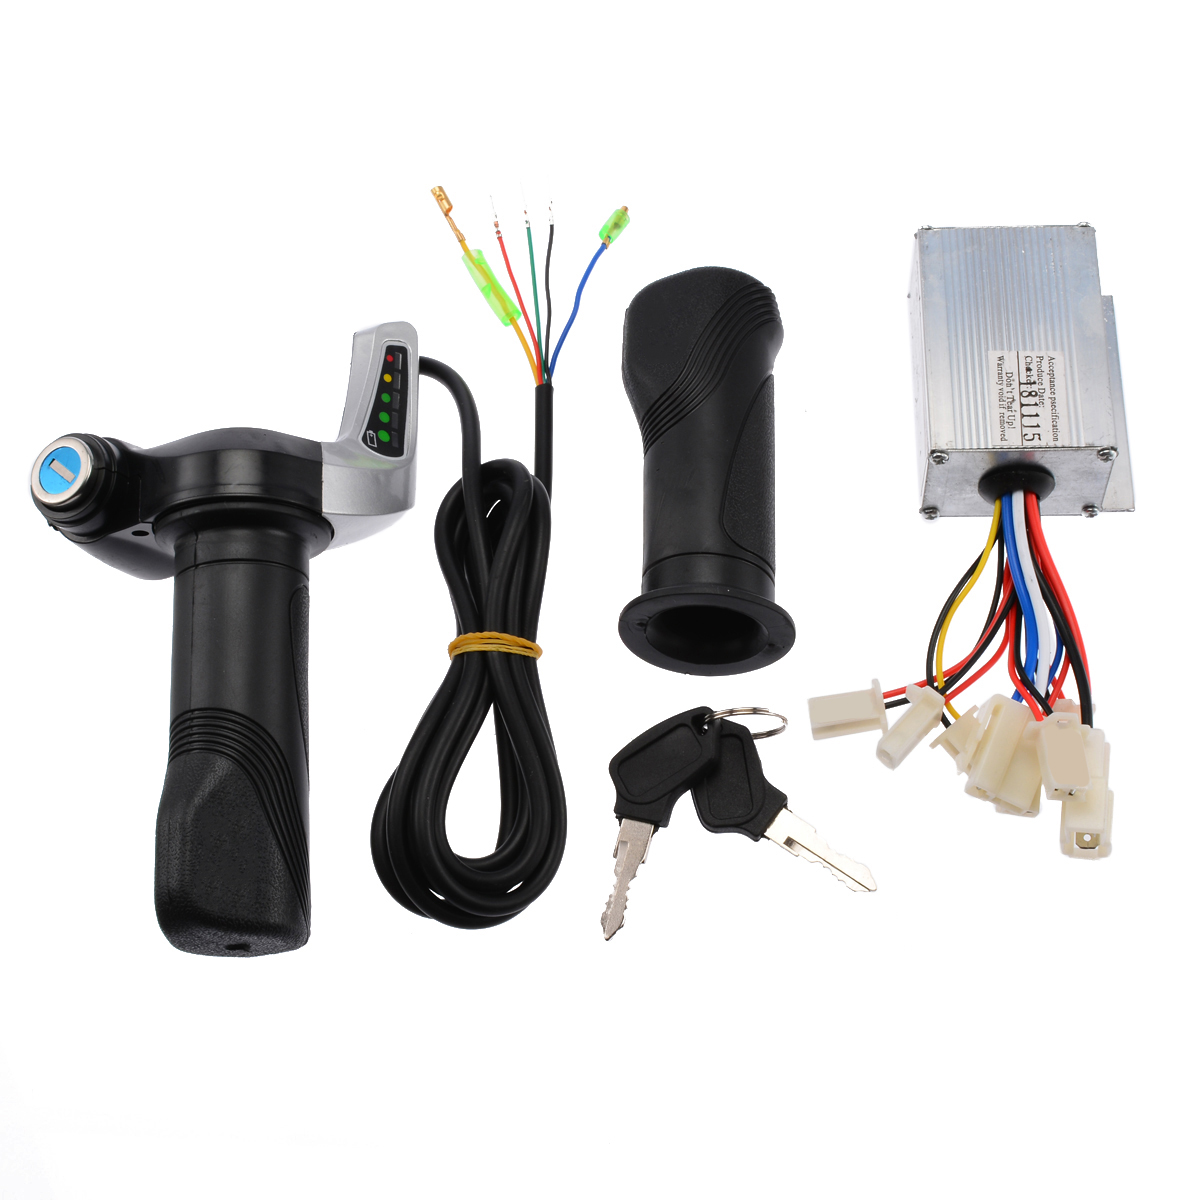 New Electric Scooter Accessories Motor Brushed Controller Throttle Twist Grip 24V 250W For Electric Scooter Bicycle Bike in Electric Bicycle Accessories from Sports Entertainment